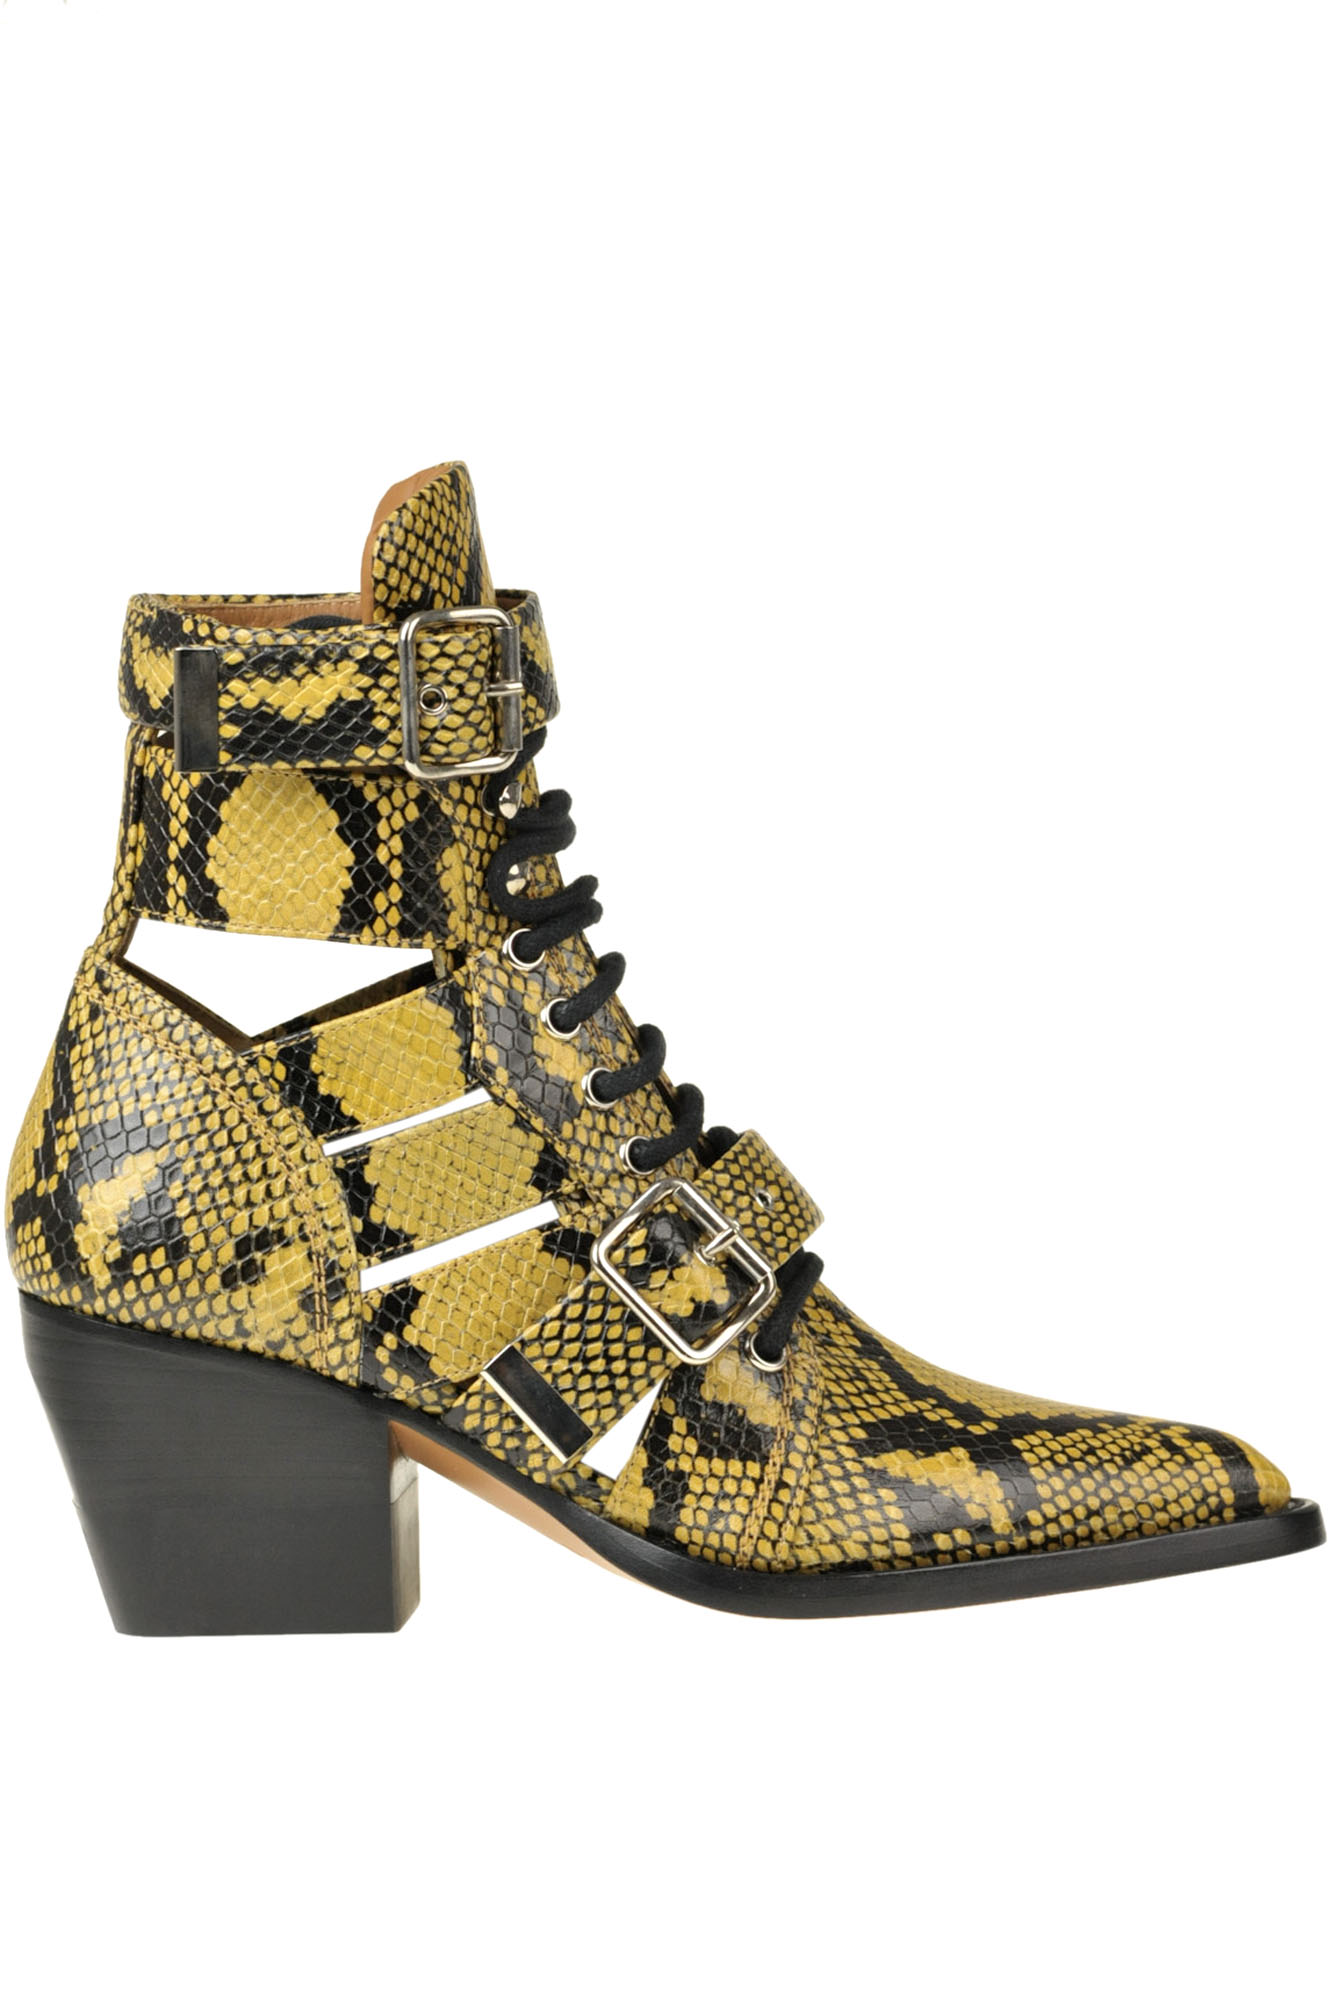 Chloé RYLEE REPTILE PRINT LEATHER ANKLE-BOOTS